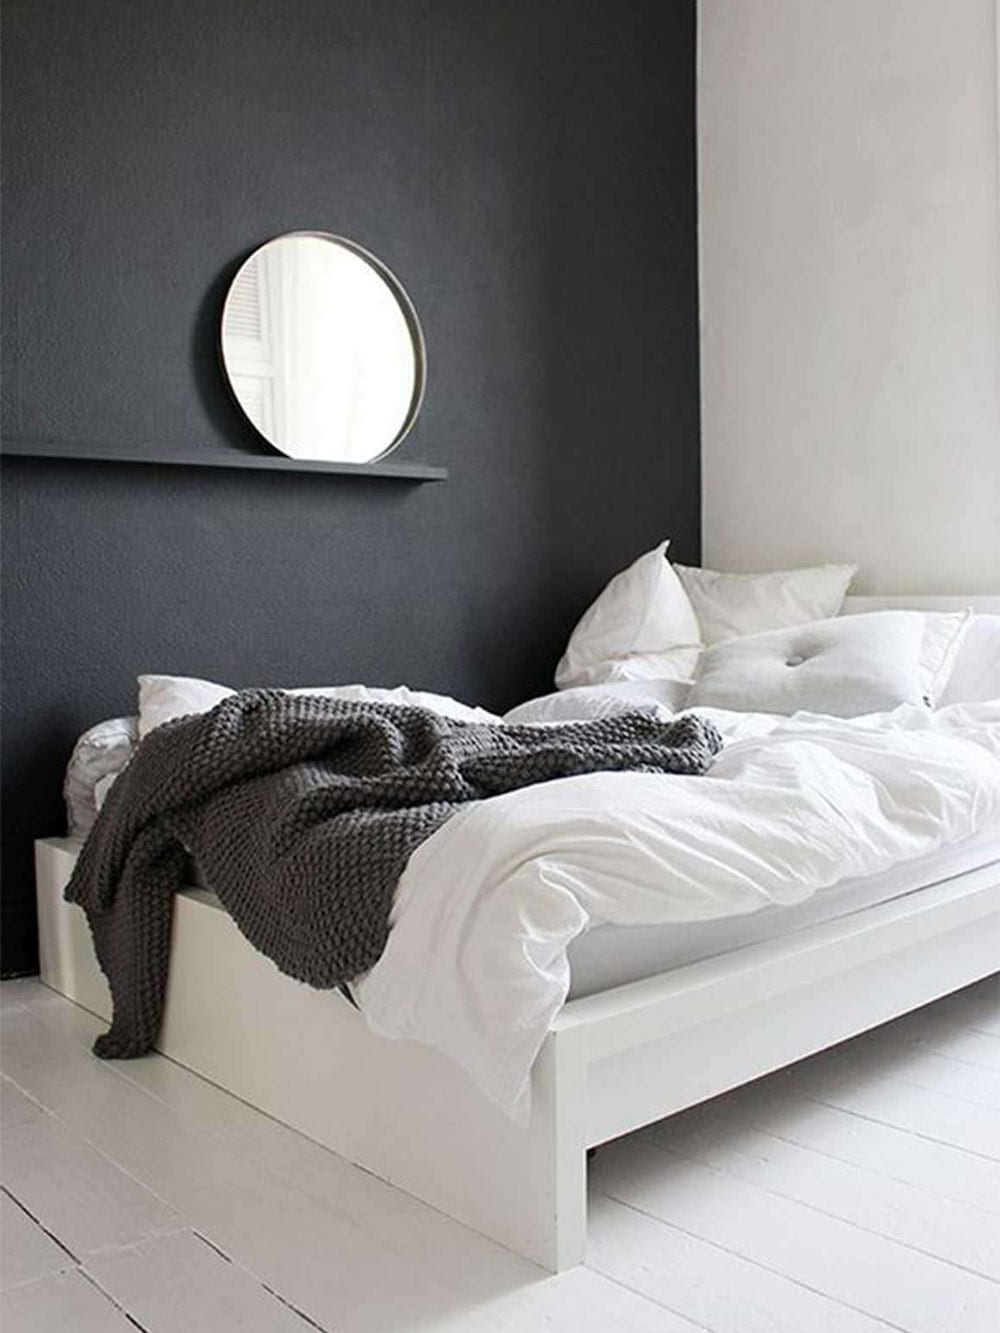 Calming minimalist bedroom moodboard style minimalism for Minimalist black and white bedroom